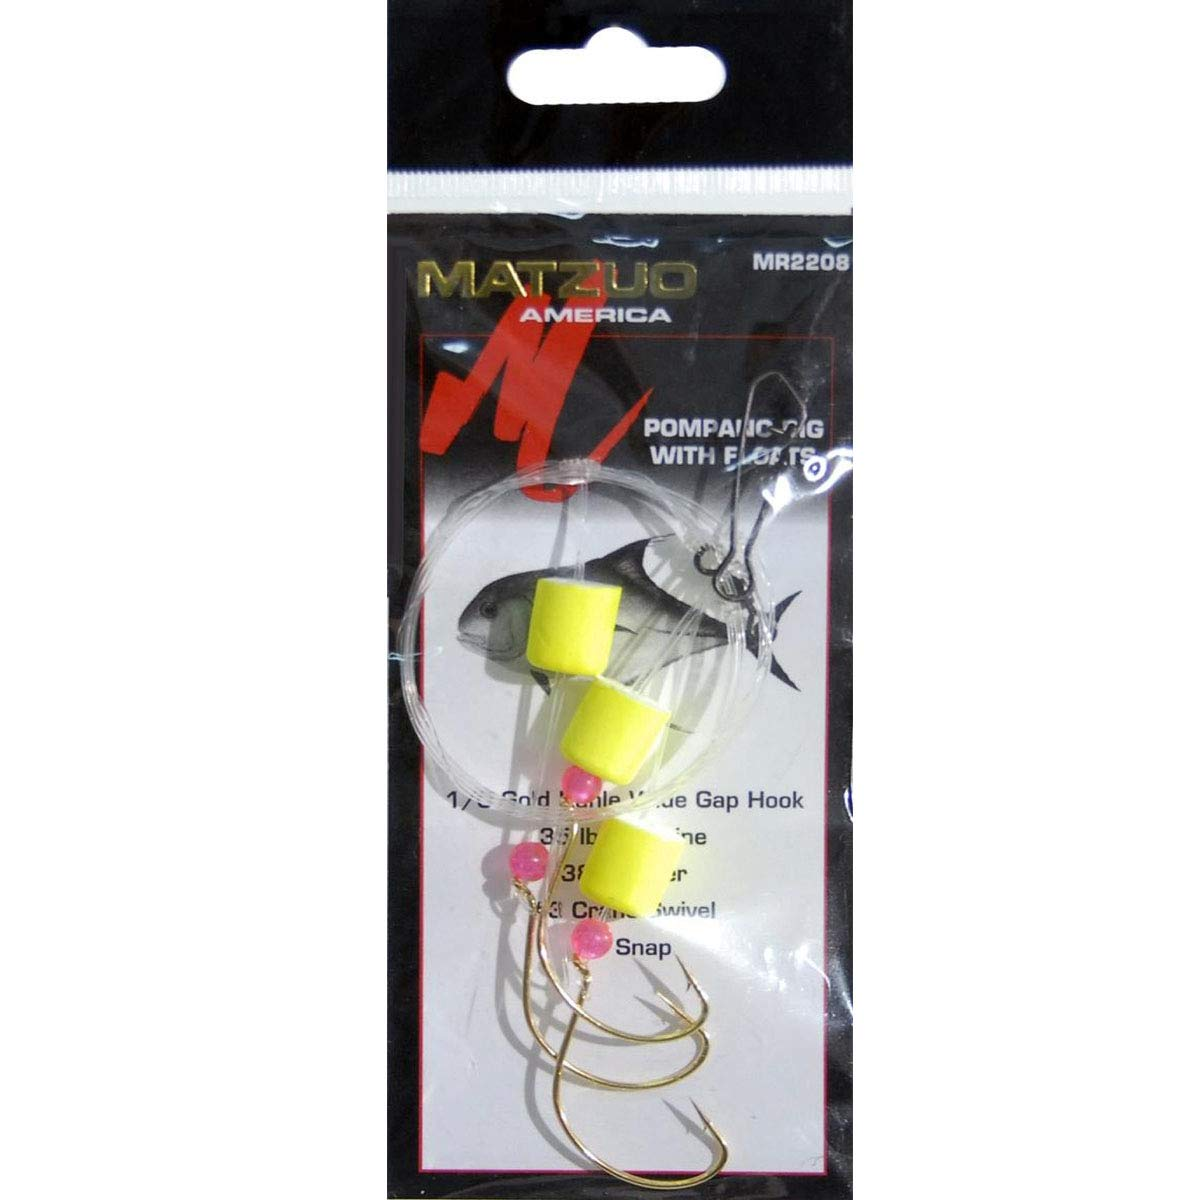 Matzuo Pompano Wide Gap Rig with Kahle Floats and Fluorescent Beads Gold